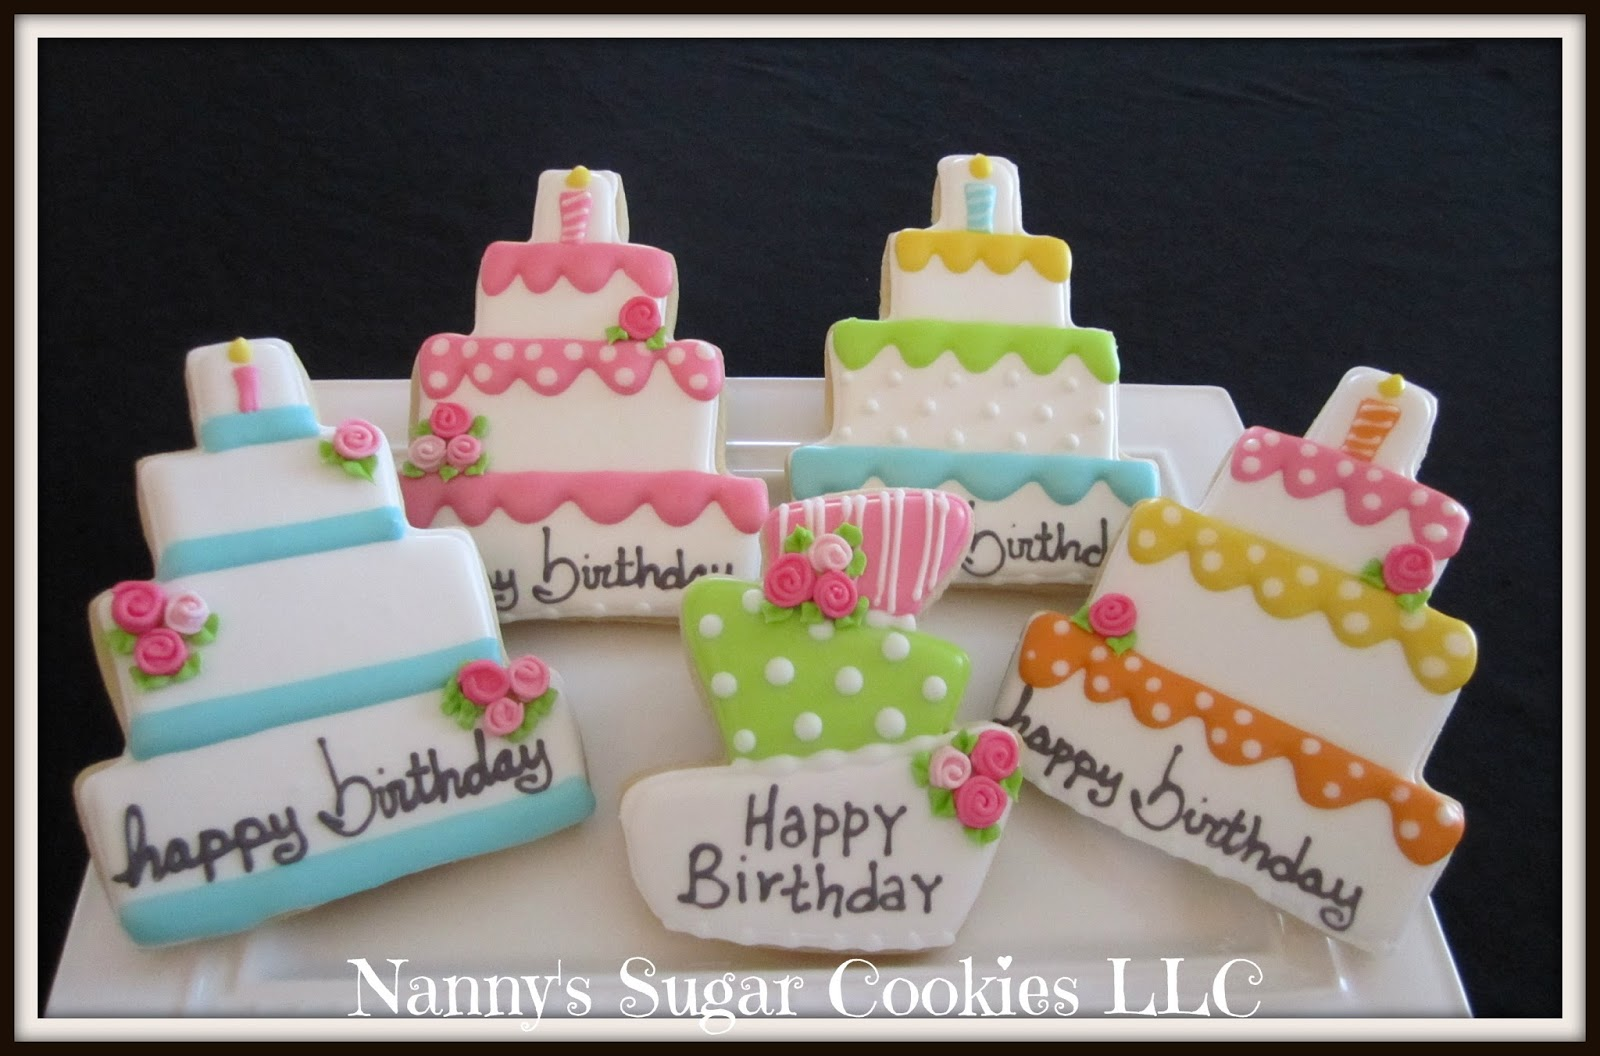 Nannys Sugar Cookies LLC Happy Birthday